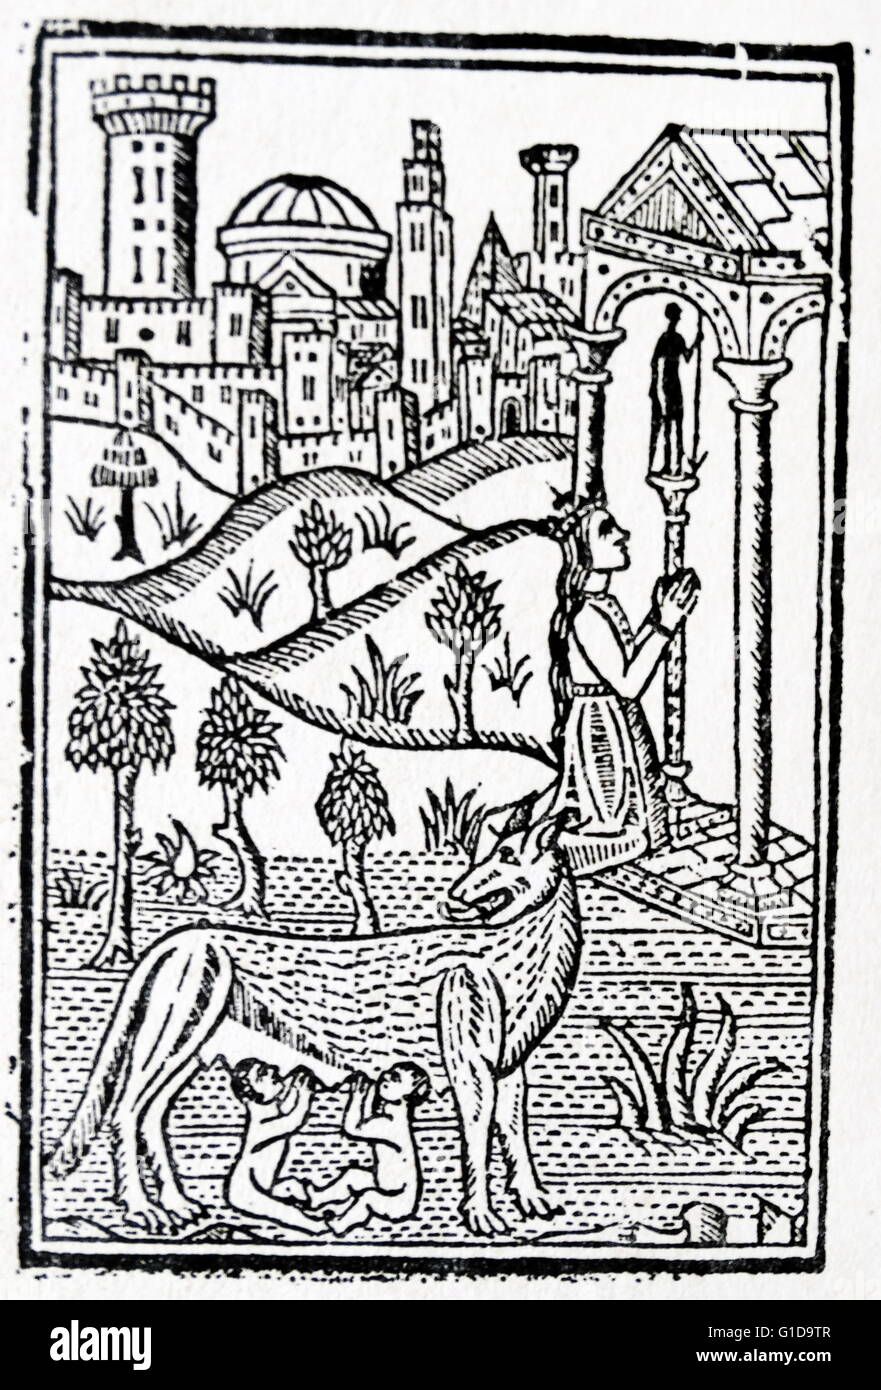 1500's pilgrim guide to Rome. Woodcut depicting the mother of Rome's founders, Romulus and Remus (suckled - Stock Image